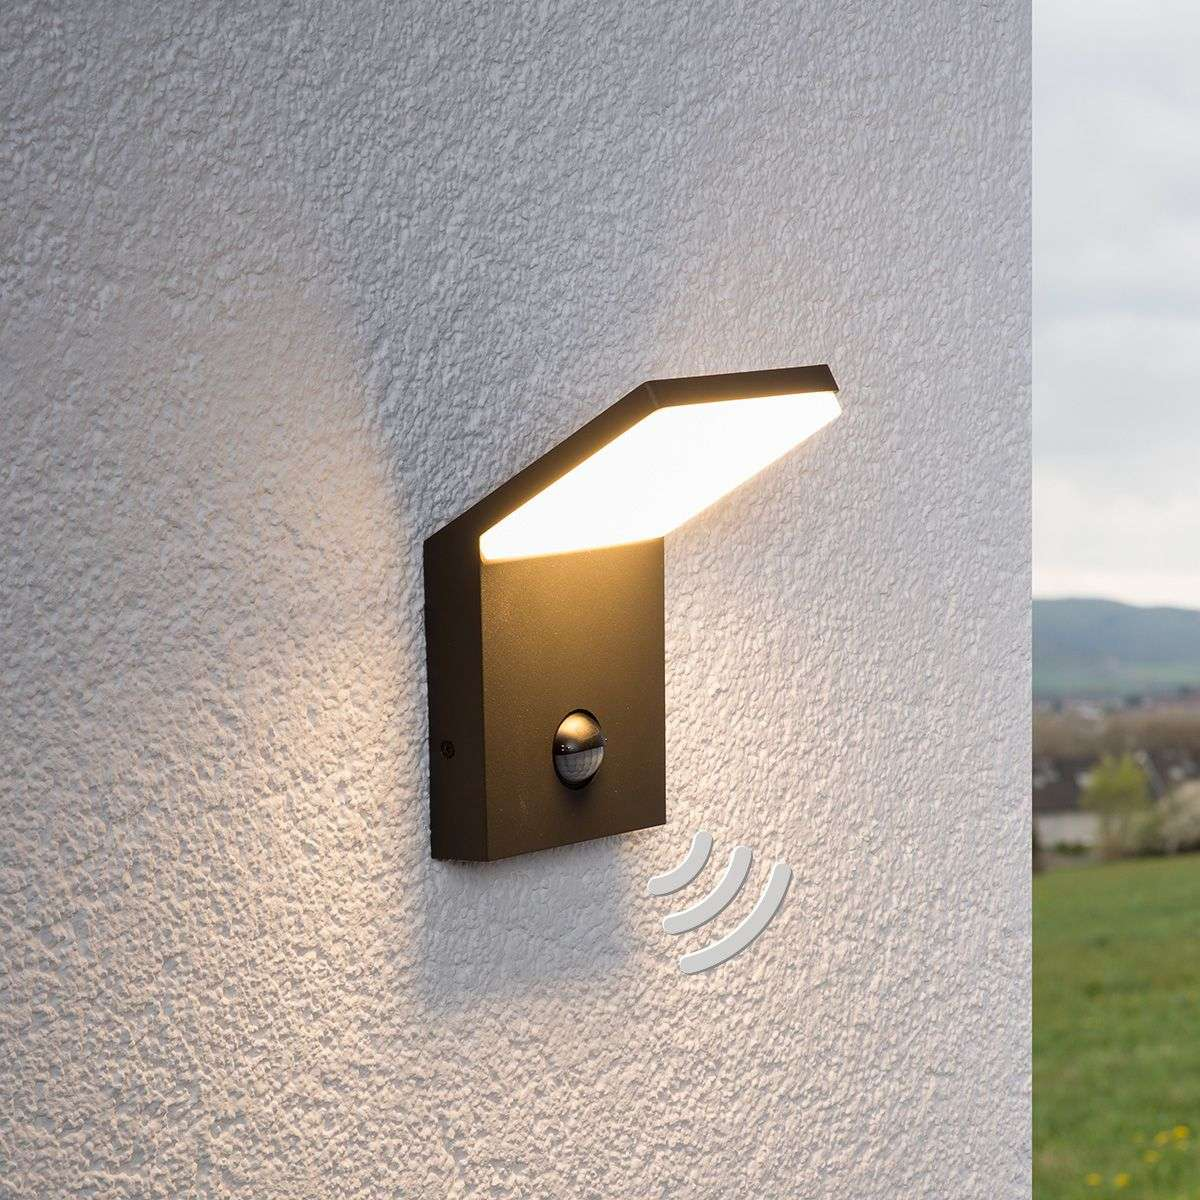 LED outdoor wall light Nevio with motion detector-9619040-31 : outdoor wall lights led - www.canuckmediamonitor.org